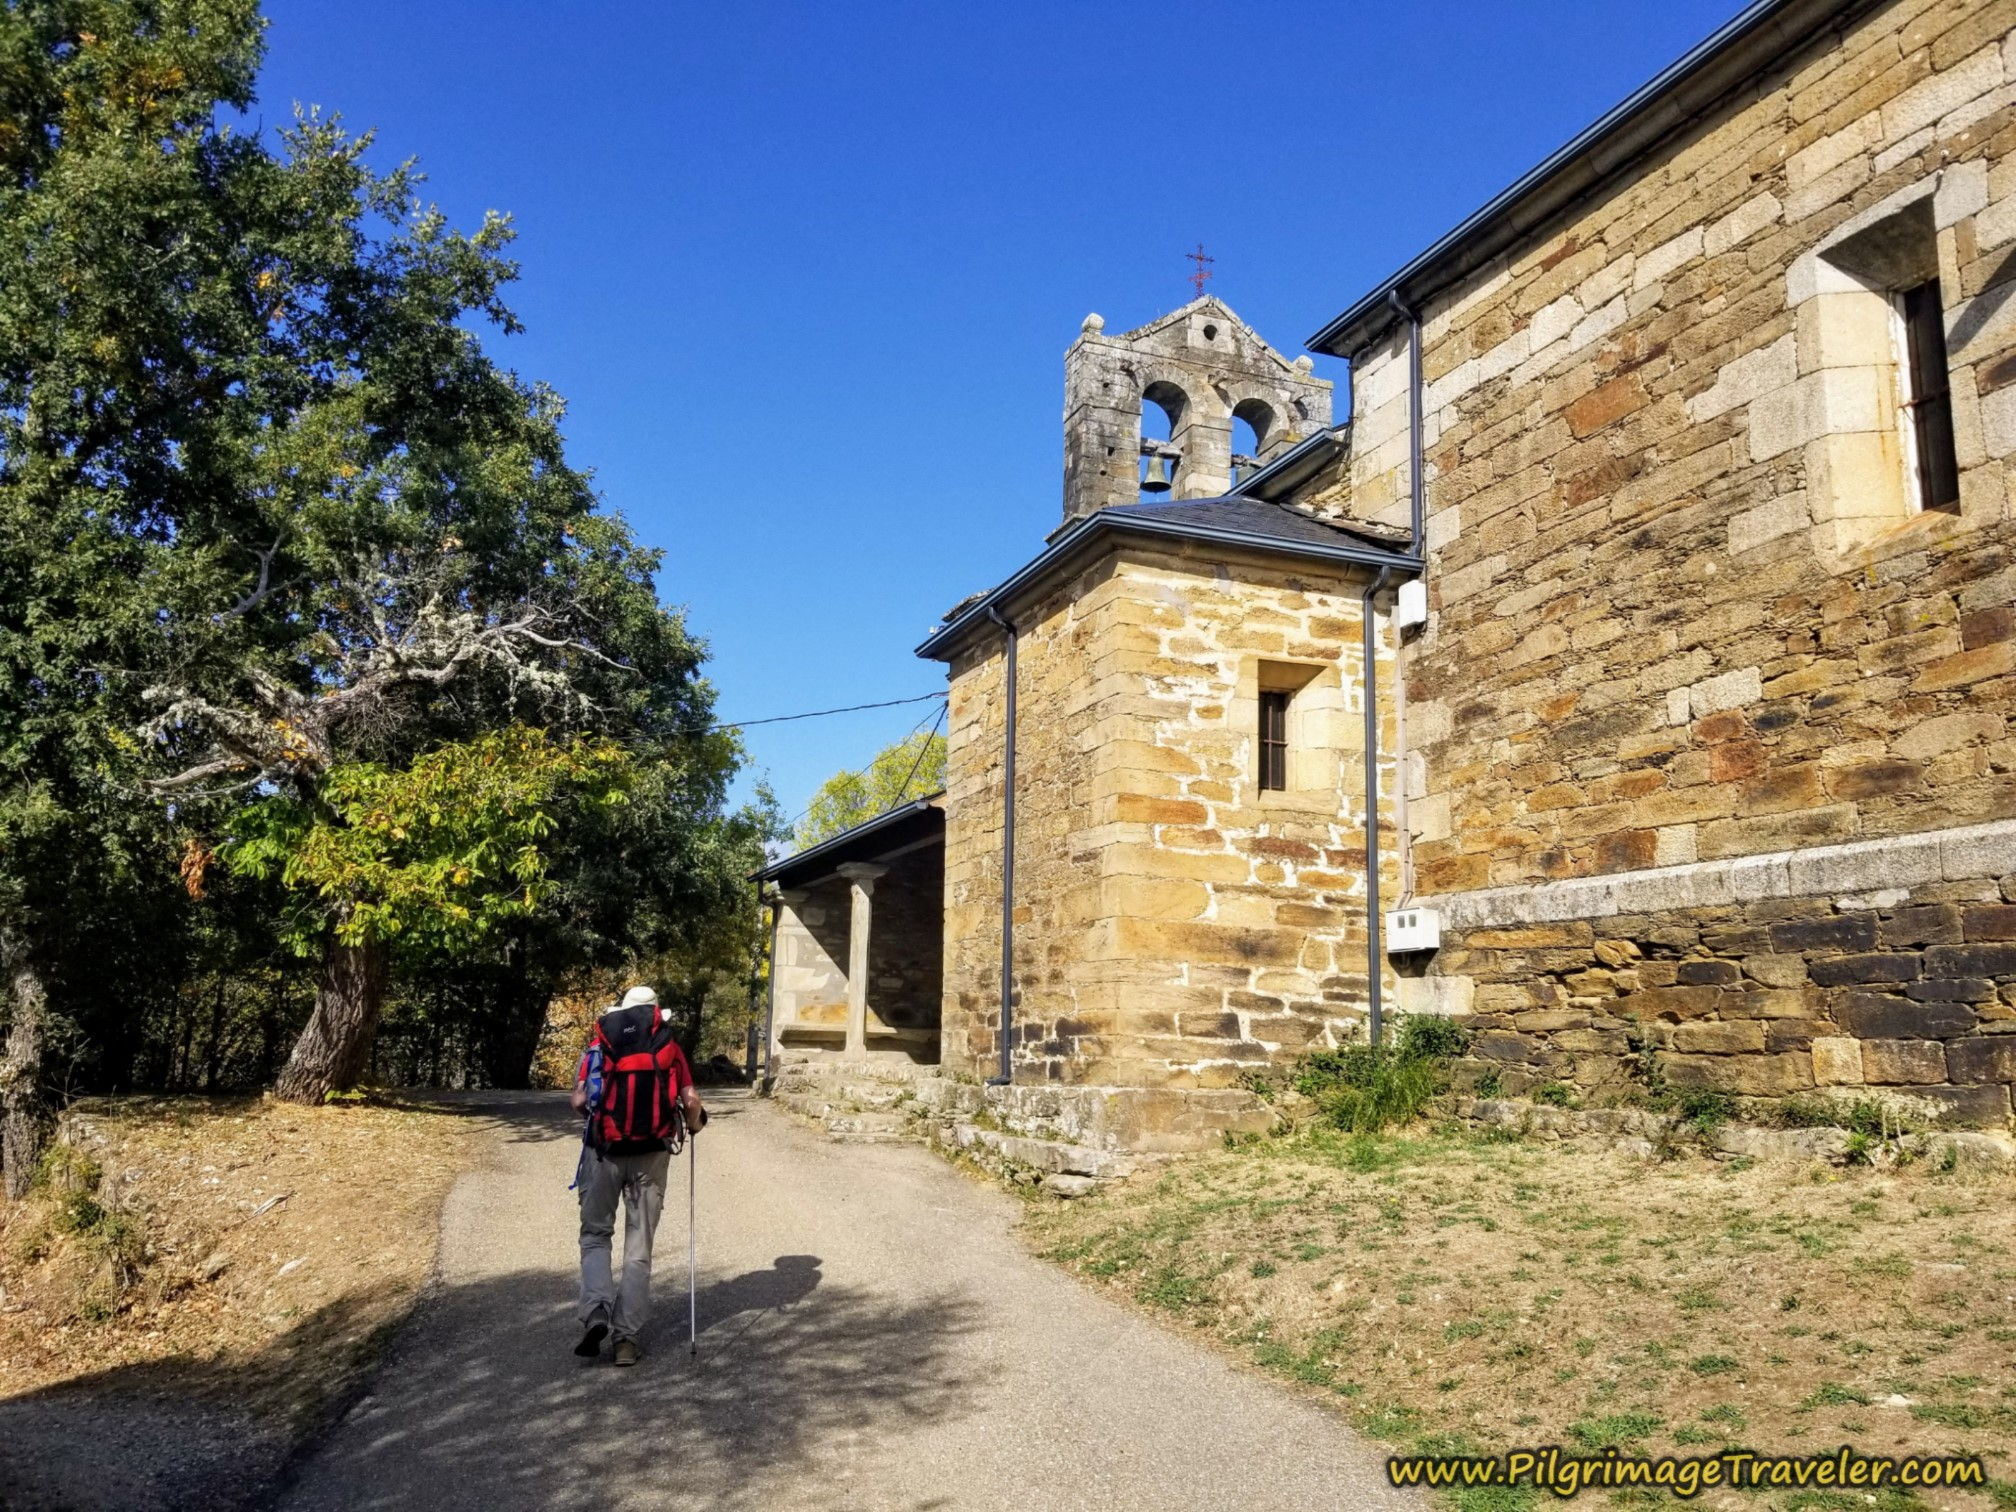 Pass by the Iglesia de Triufé on the Camino Sanabrés from Entrepeñas to Puebla de Sanabria